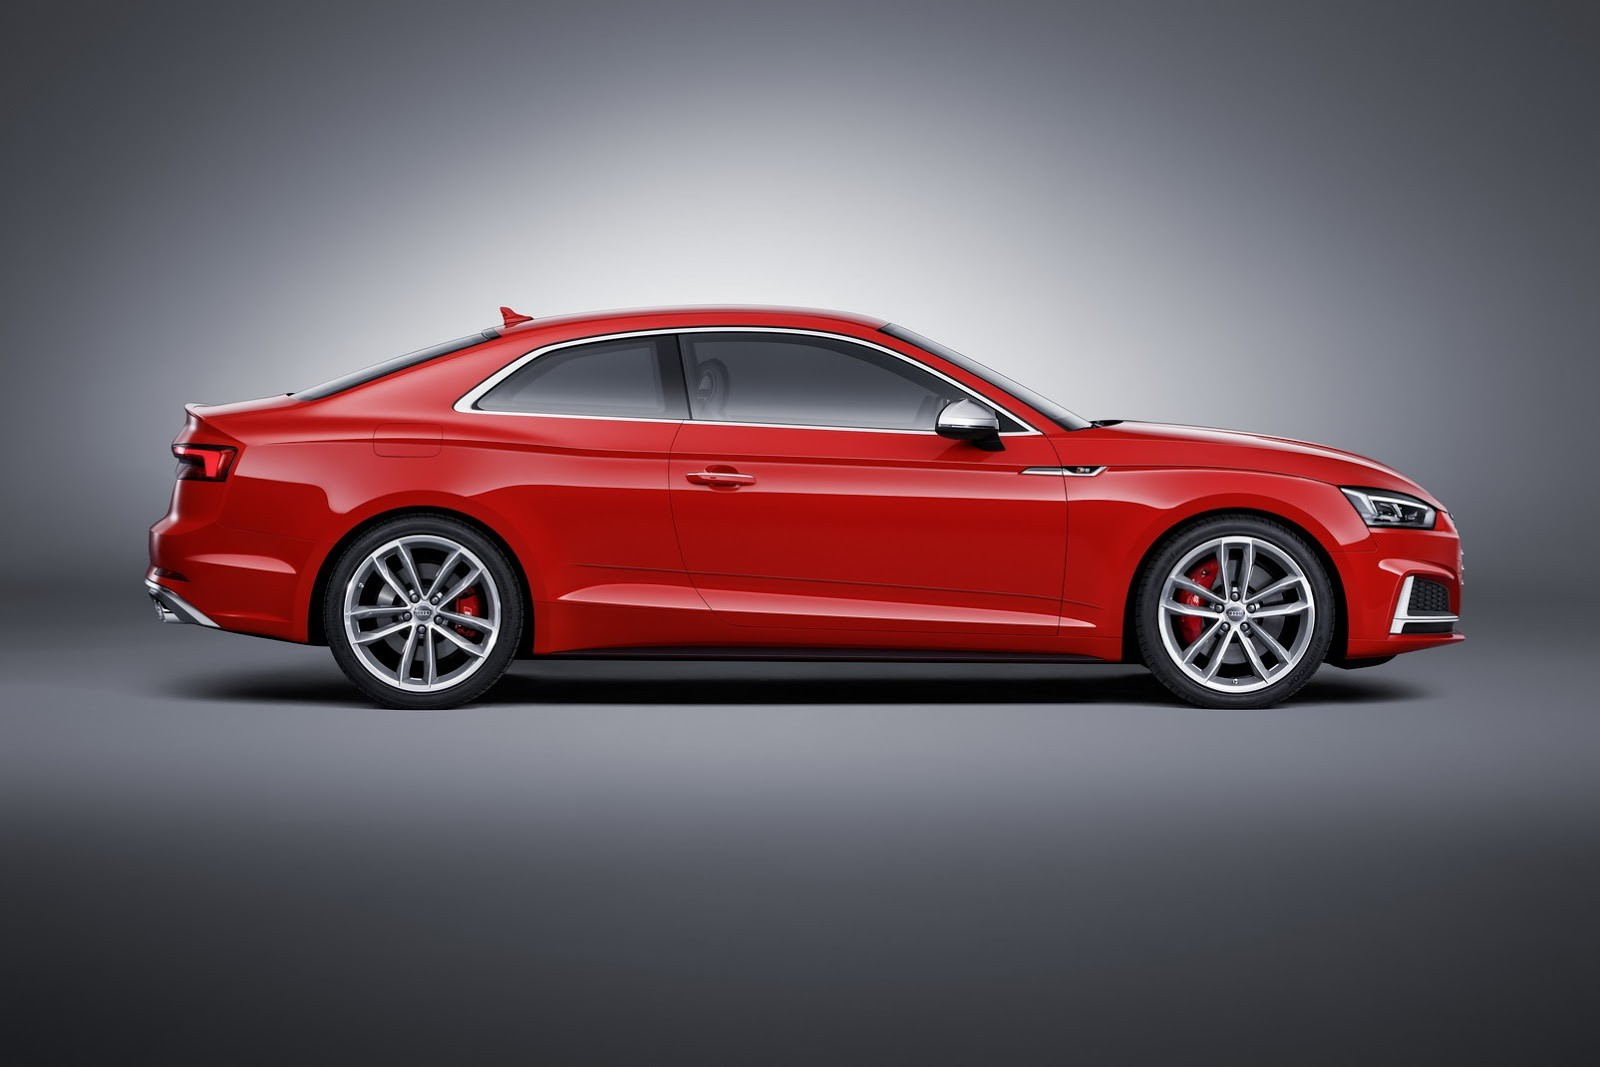 2017 audi s5 coupe debuts with 354 hp turbocharged v6 autoevolution. Black Bedroom Furniture Sets. Home Design Ideas